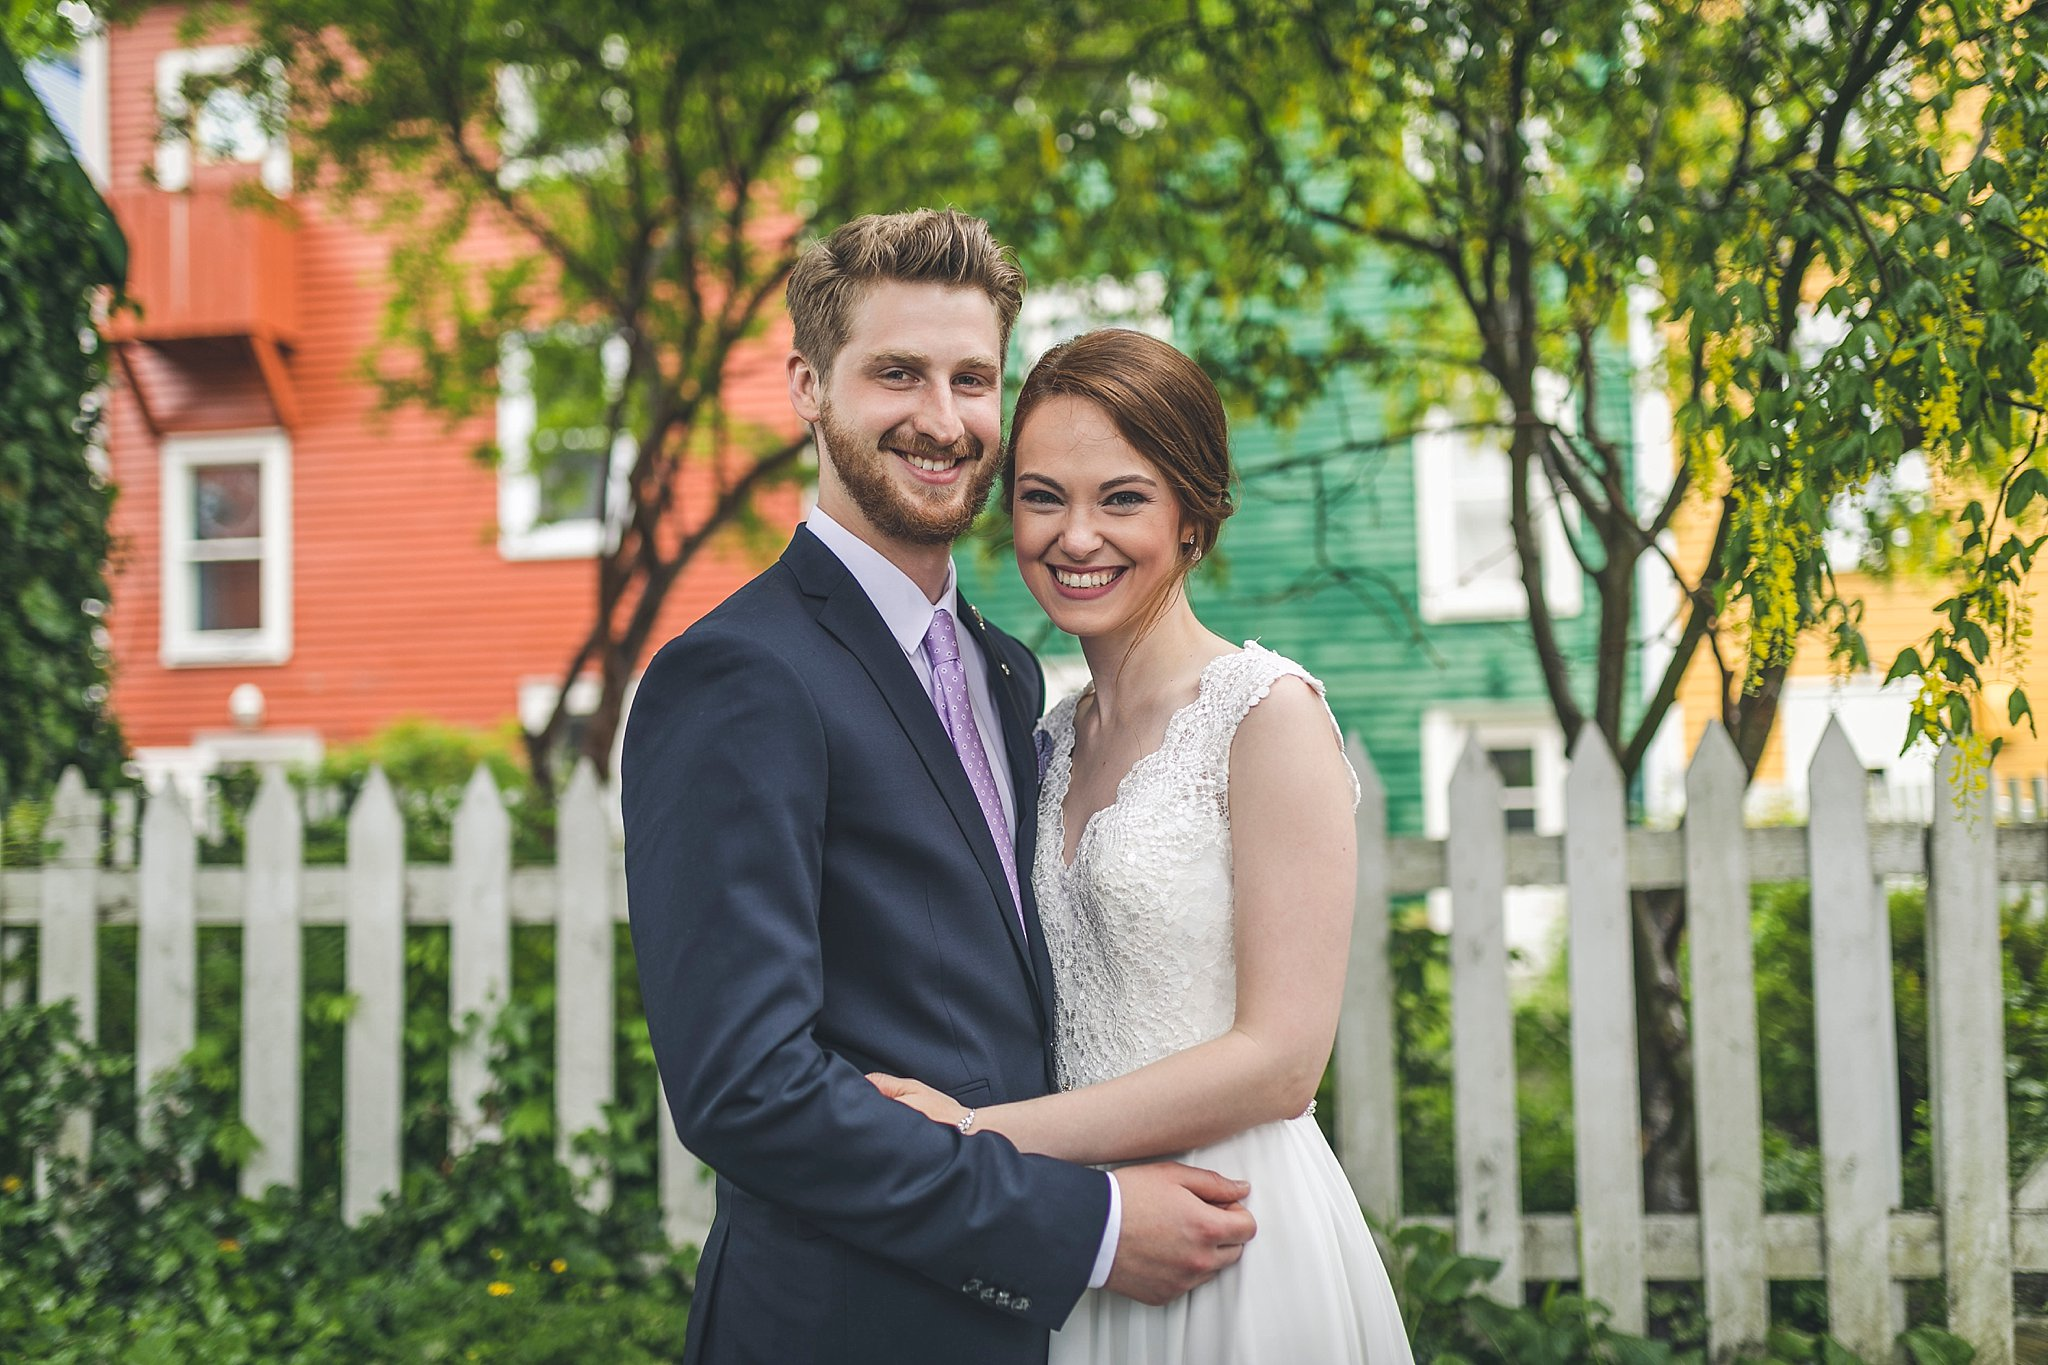 Bride and Groom have their photograph taken by St. John's, Newfoundland wedding photographer JP Mullowney off Gower Street